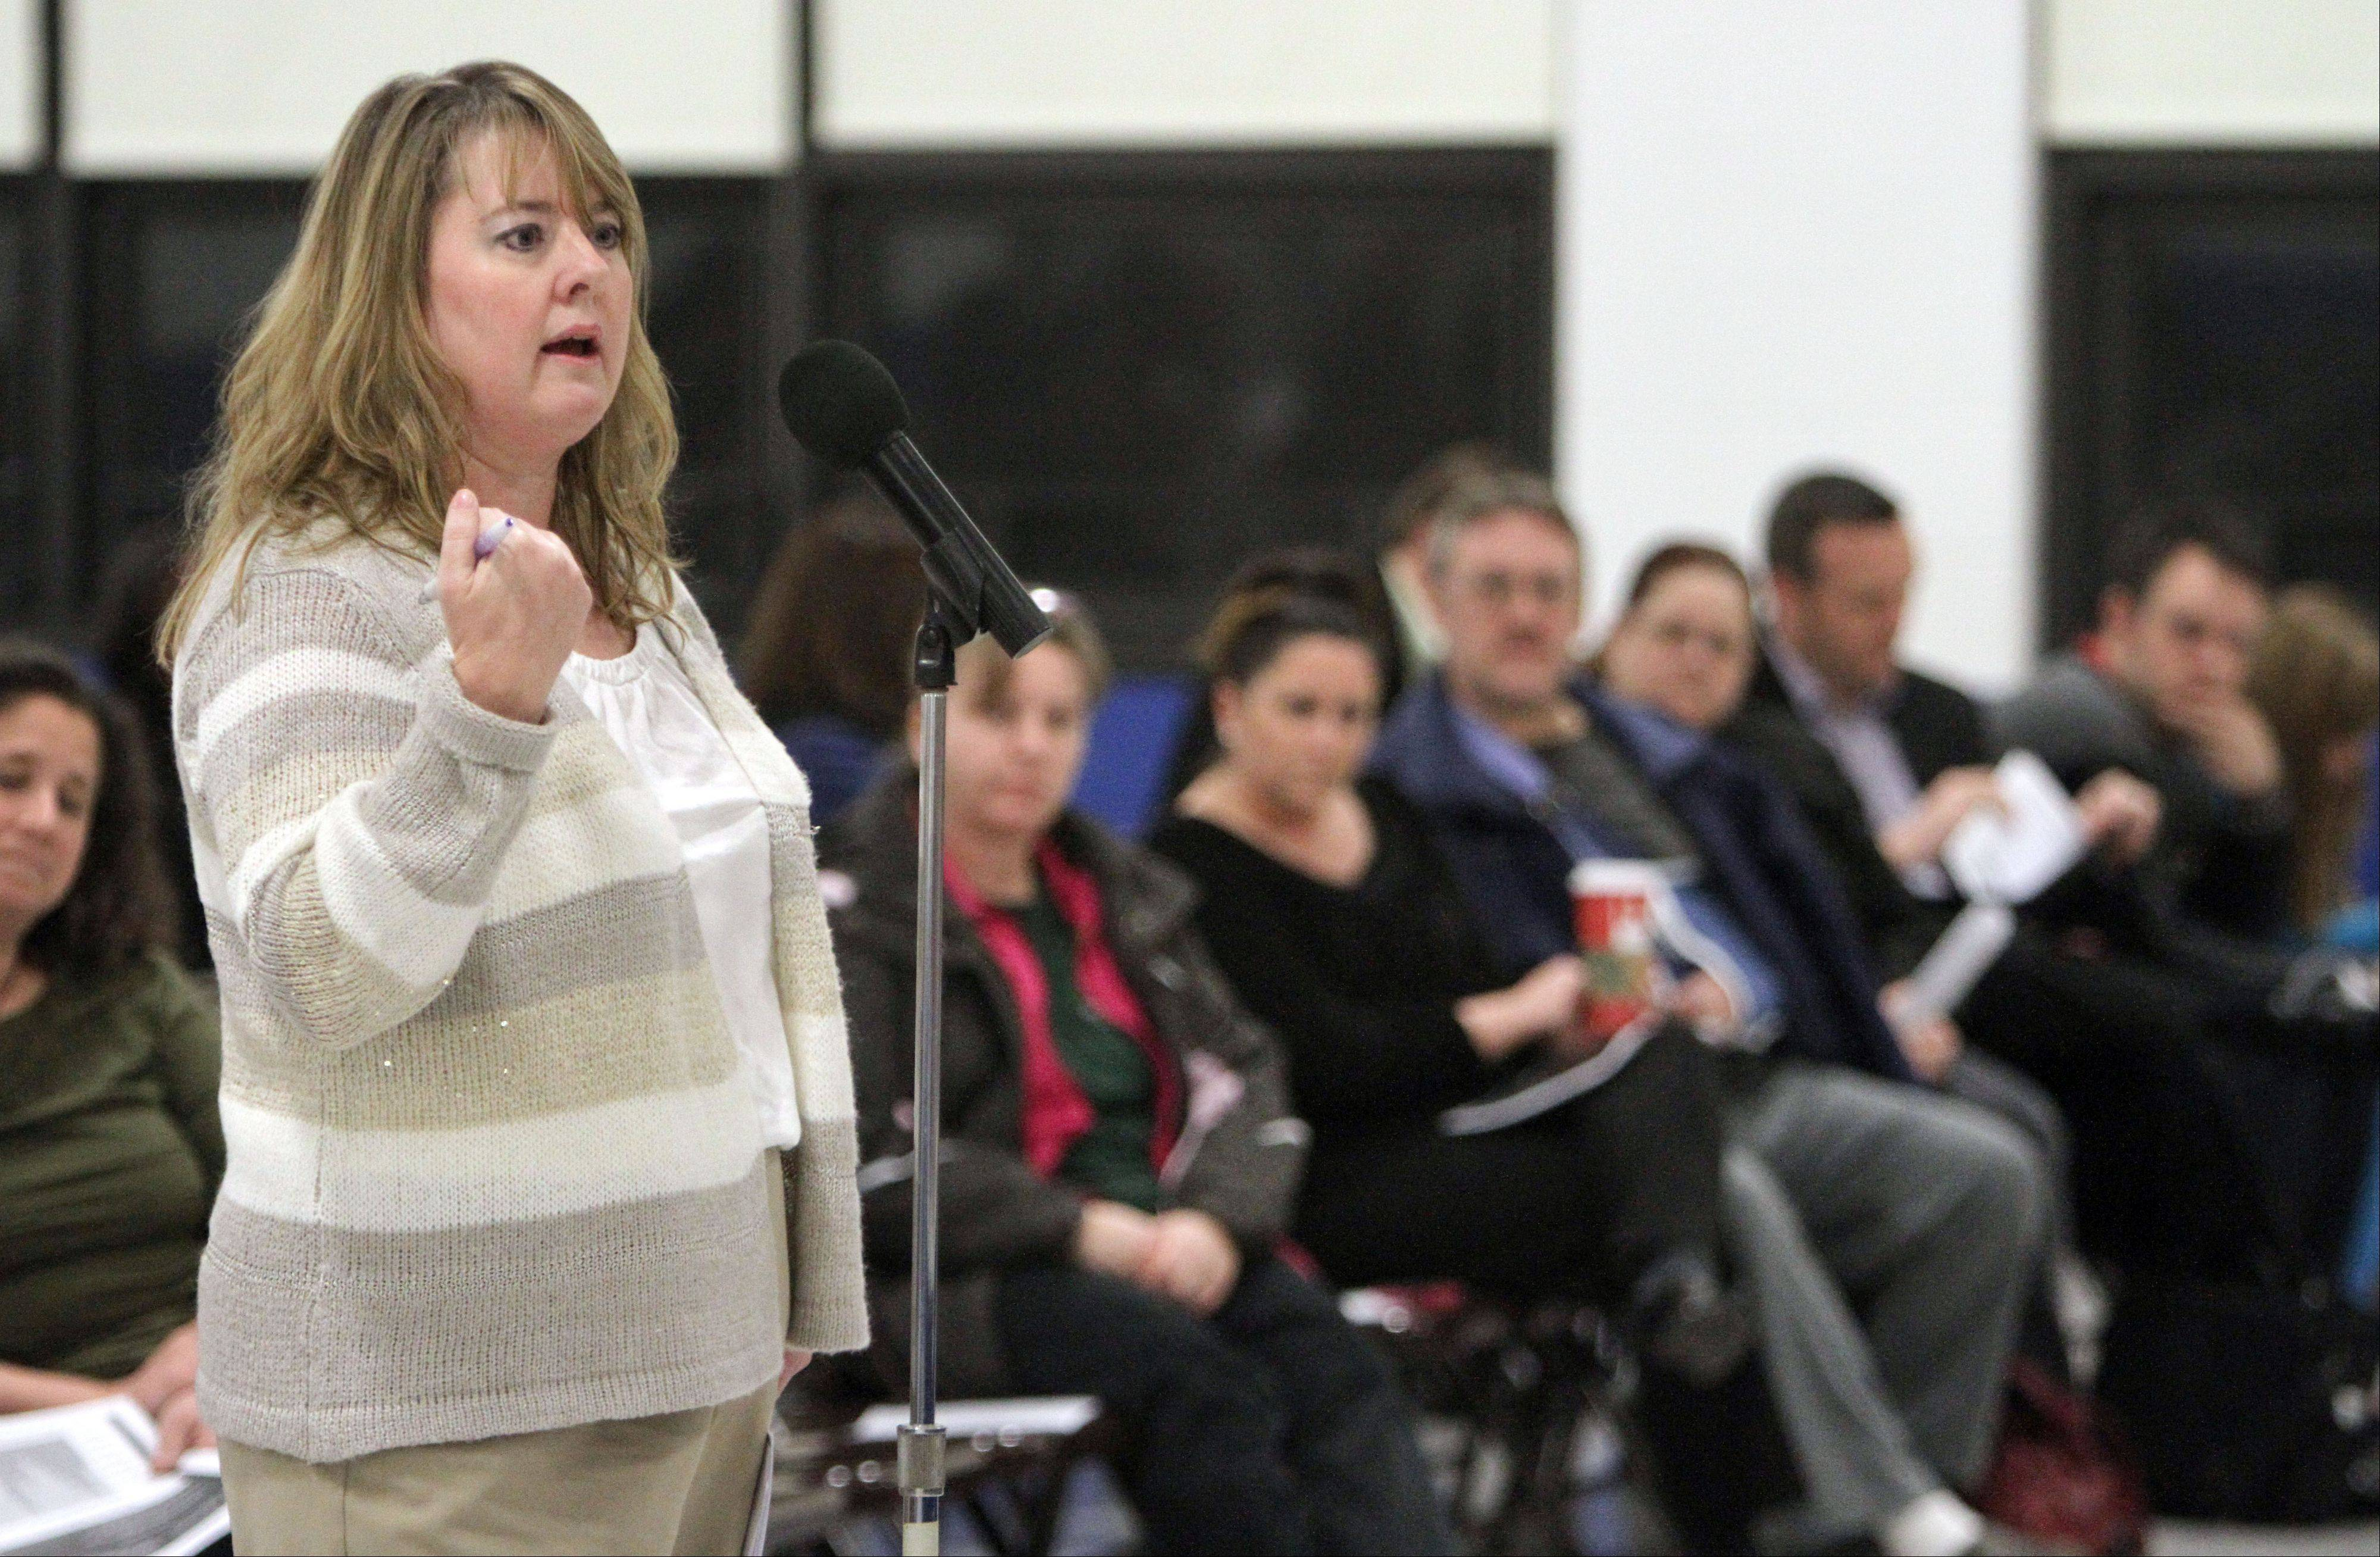 Colleen Wade, a Grayslake resident and mother of two, voices her concerns as Grayslake Elementary District 46 board members hosted a town-hall meeting Wednesday night to focus on questions from parents and others related to a possible teachers strike.